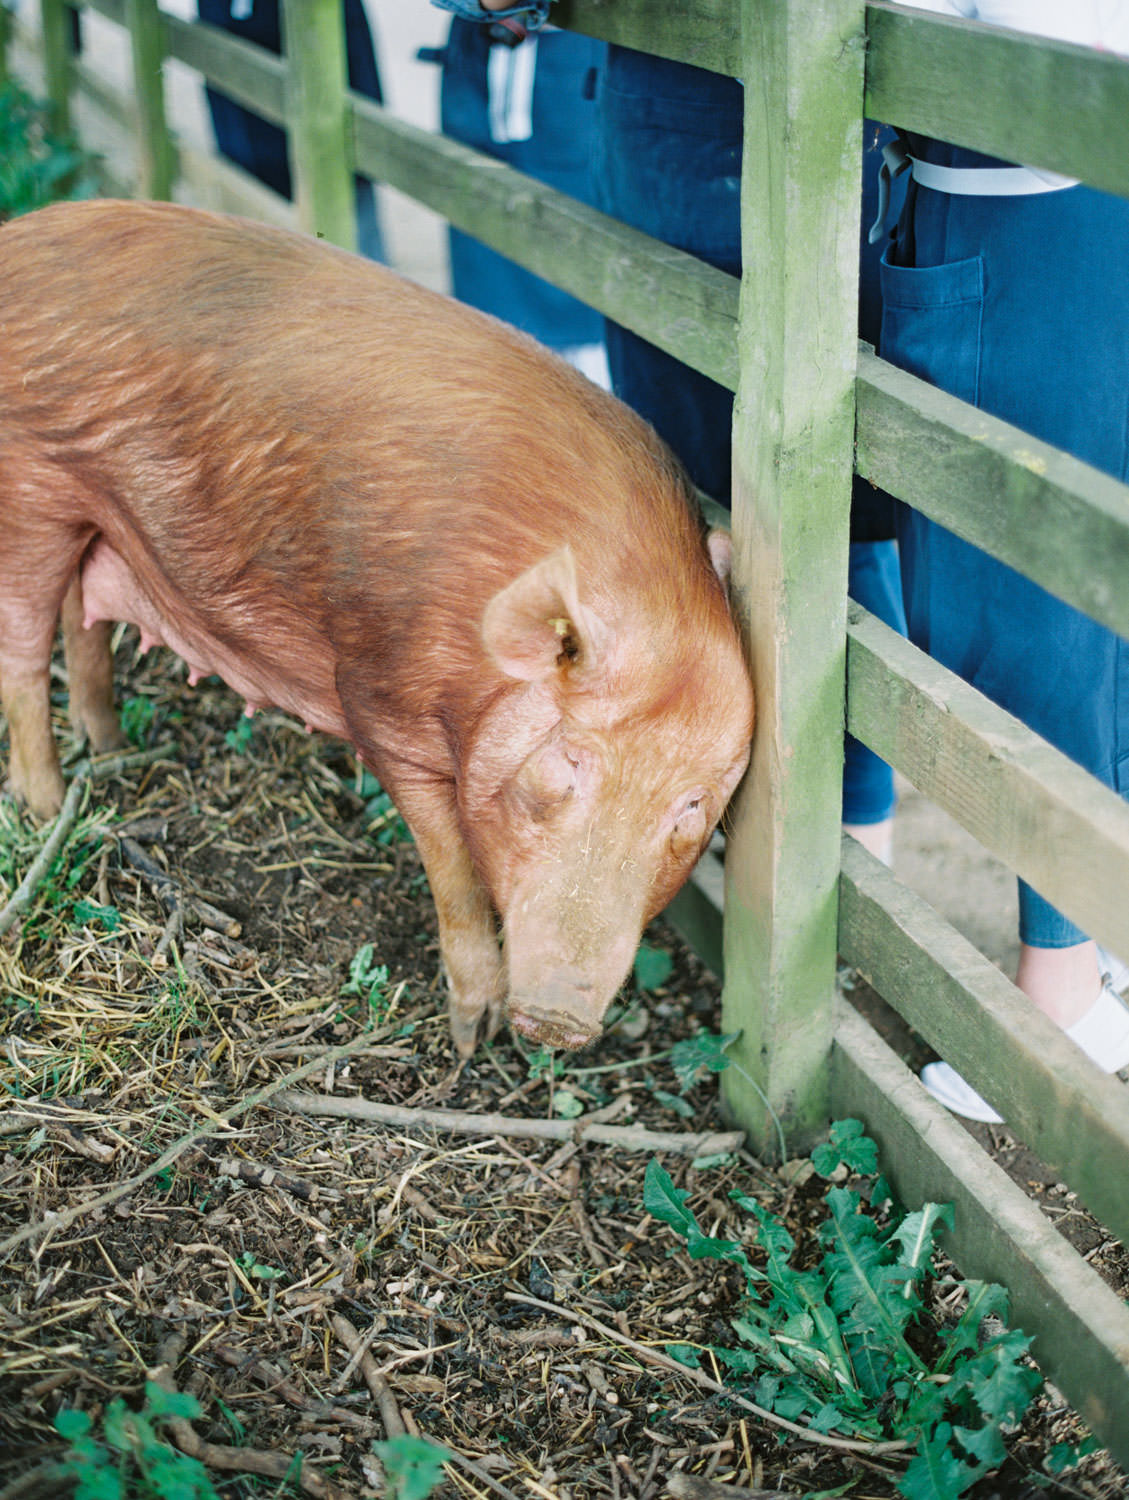 Daylesford Farm pig. Flutter Magazine Retreat in the Cotswolds, England. Photo by Cavin Elizabeth Photography on film